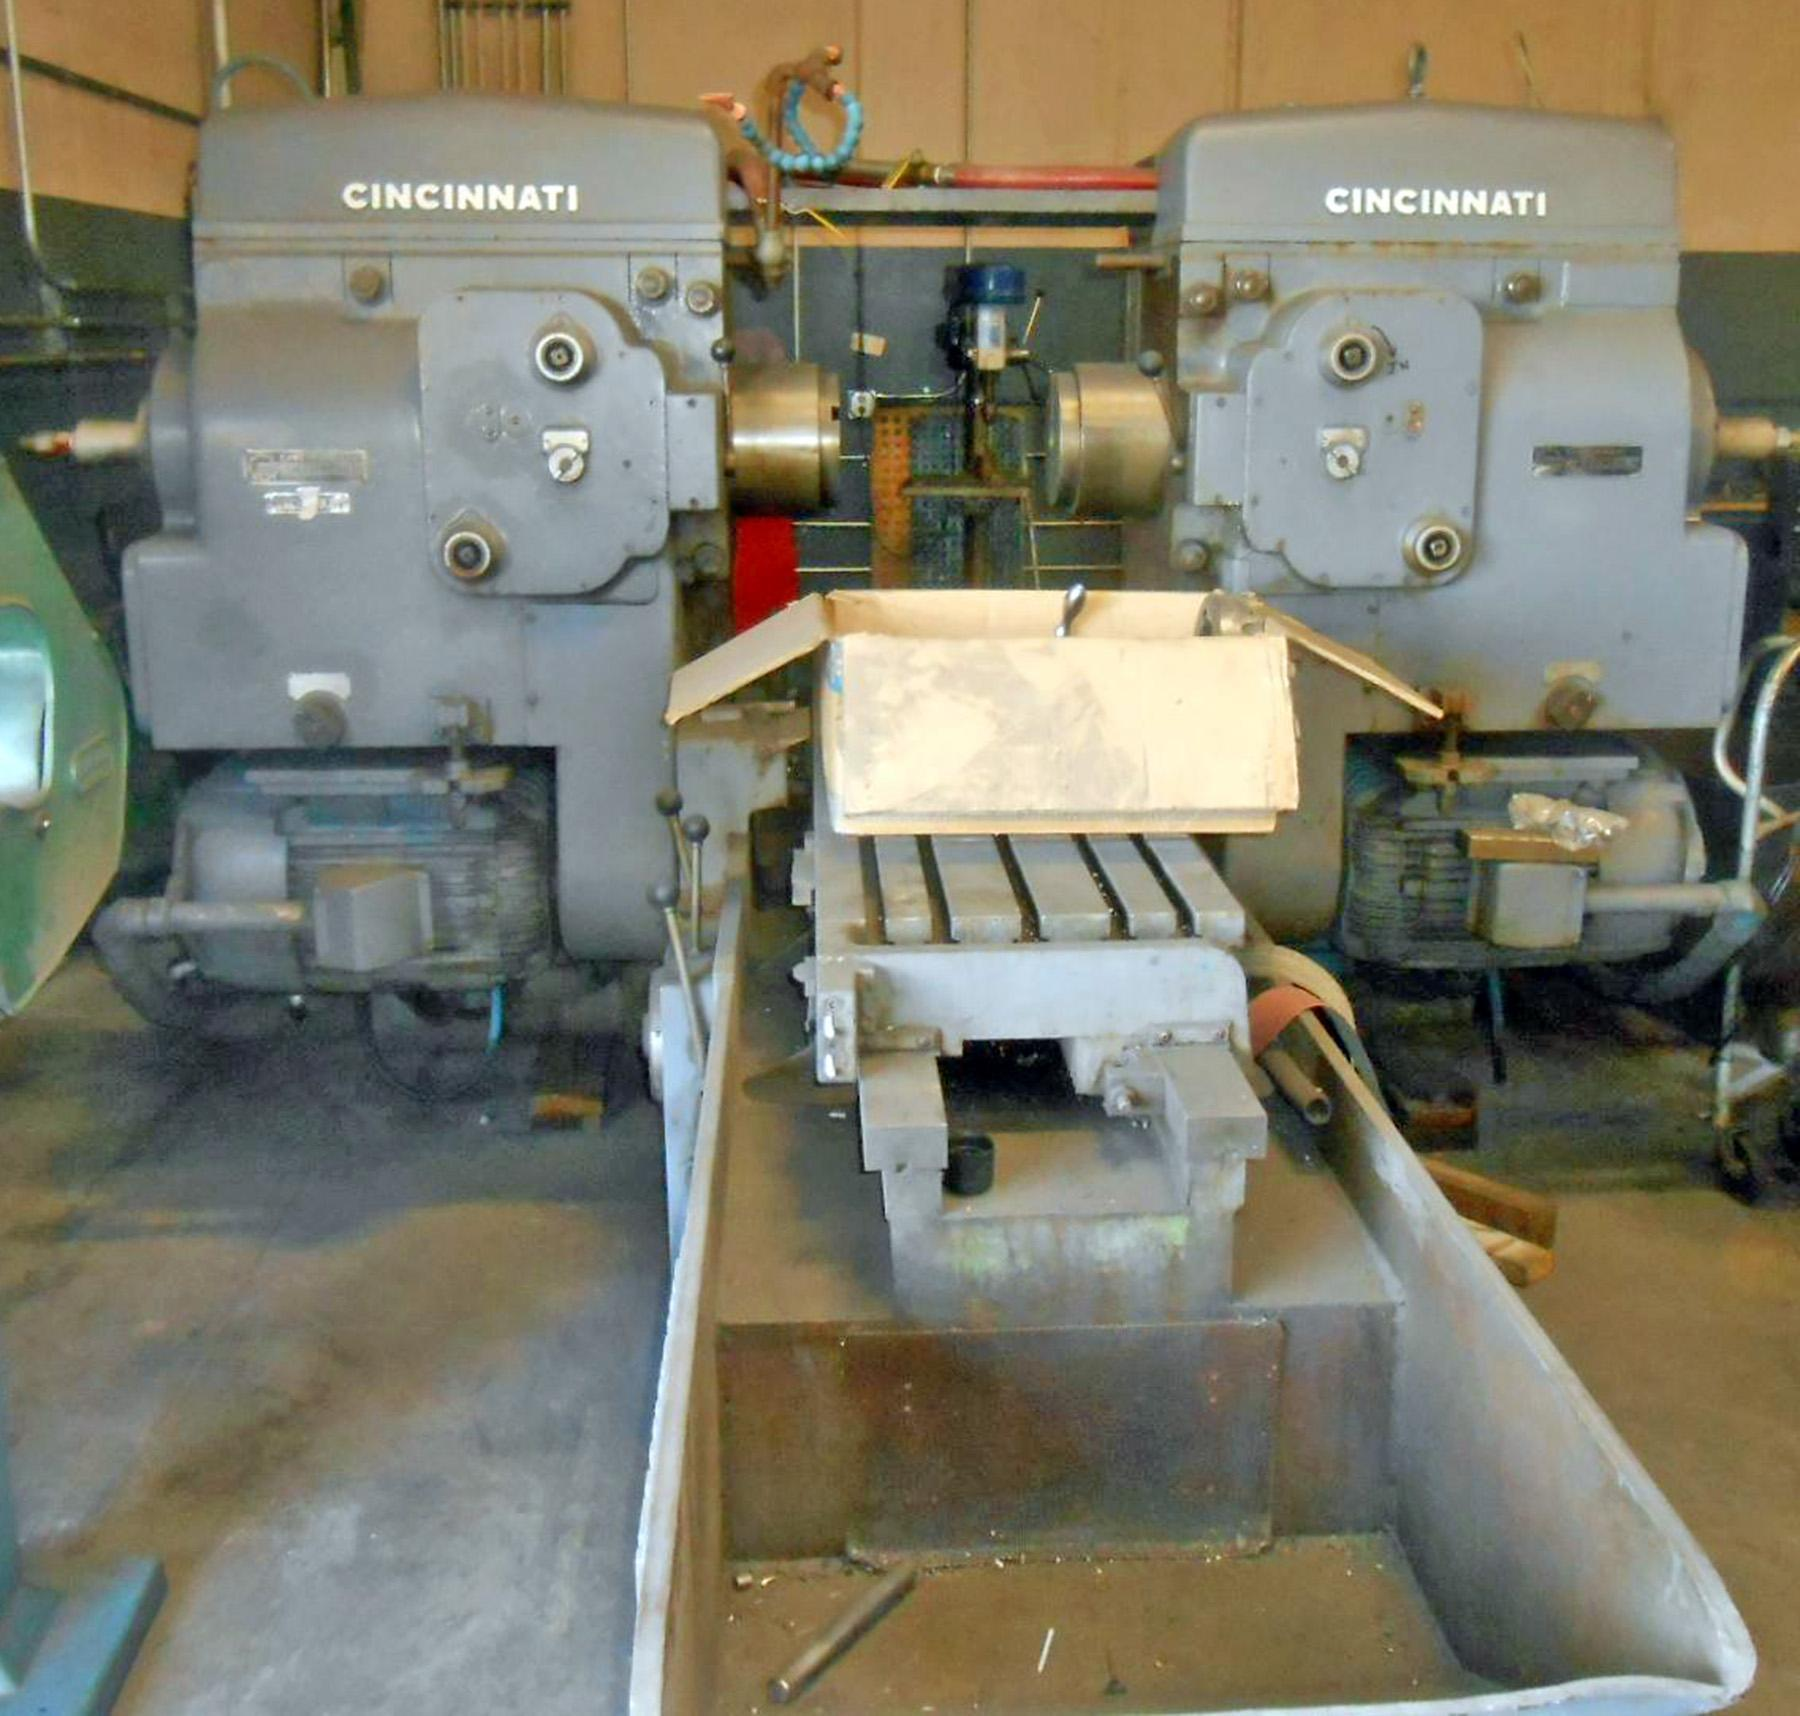 USED, CINCINNATI MODEL 430-186 RAM TYPE HYPOWERMATIC DUPLEX PRODUCTION MILLING MACHINE